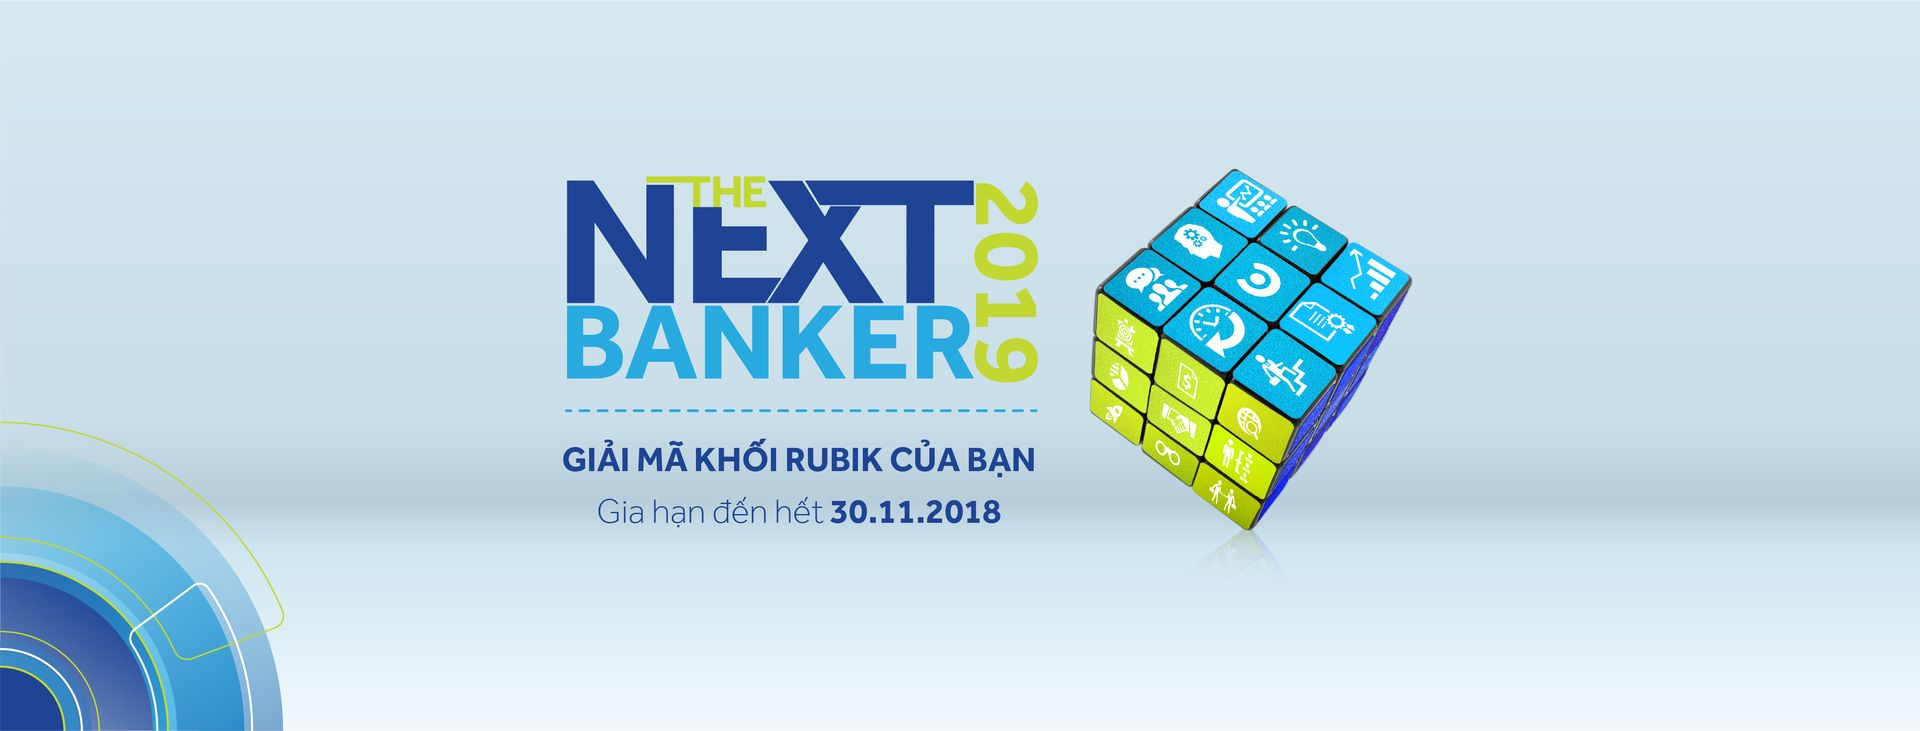 THE NEXT BANKER 2019